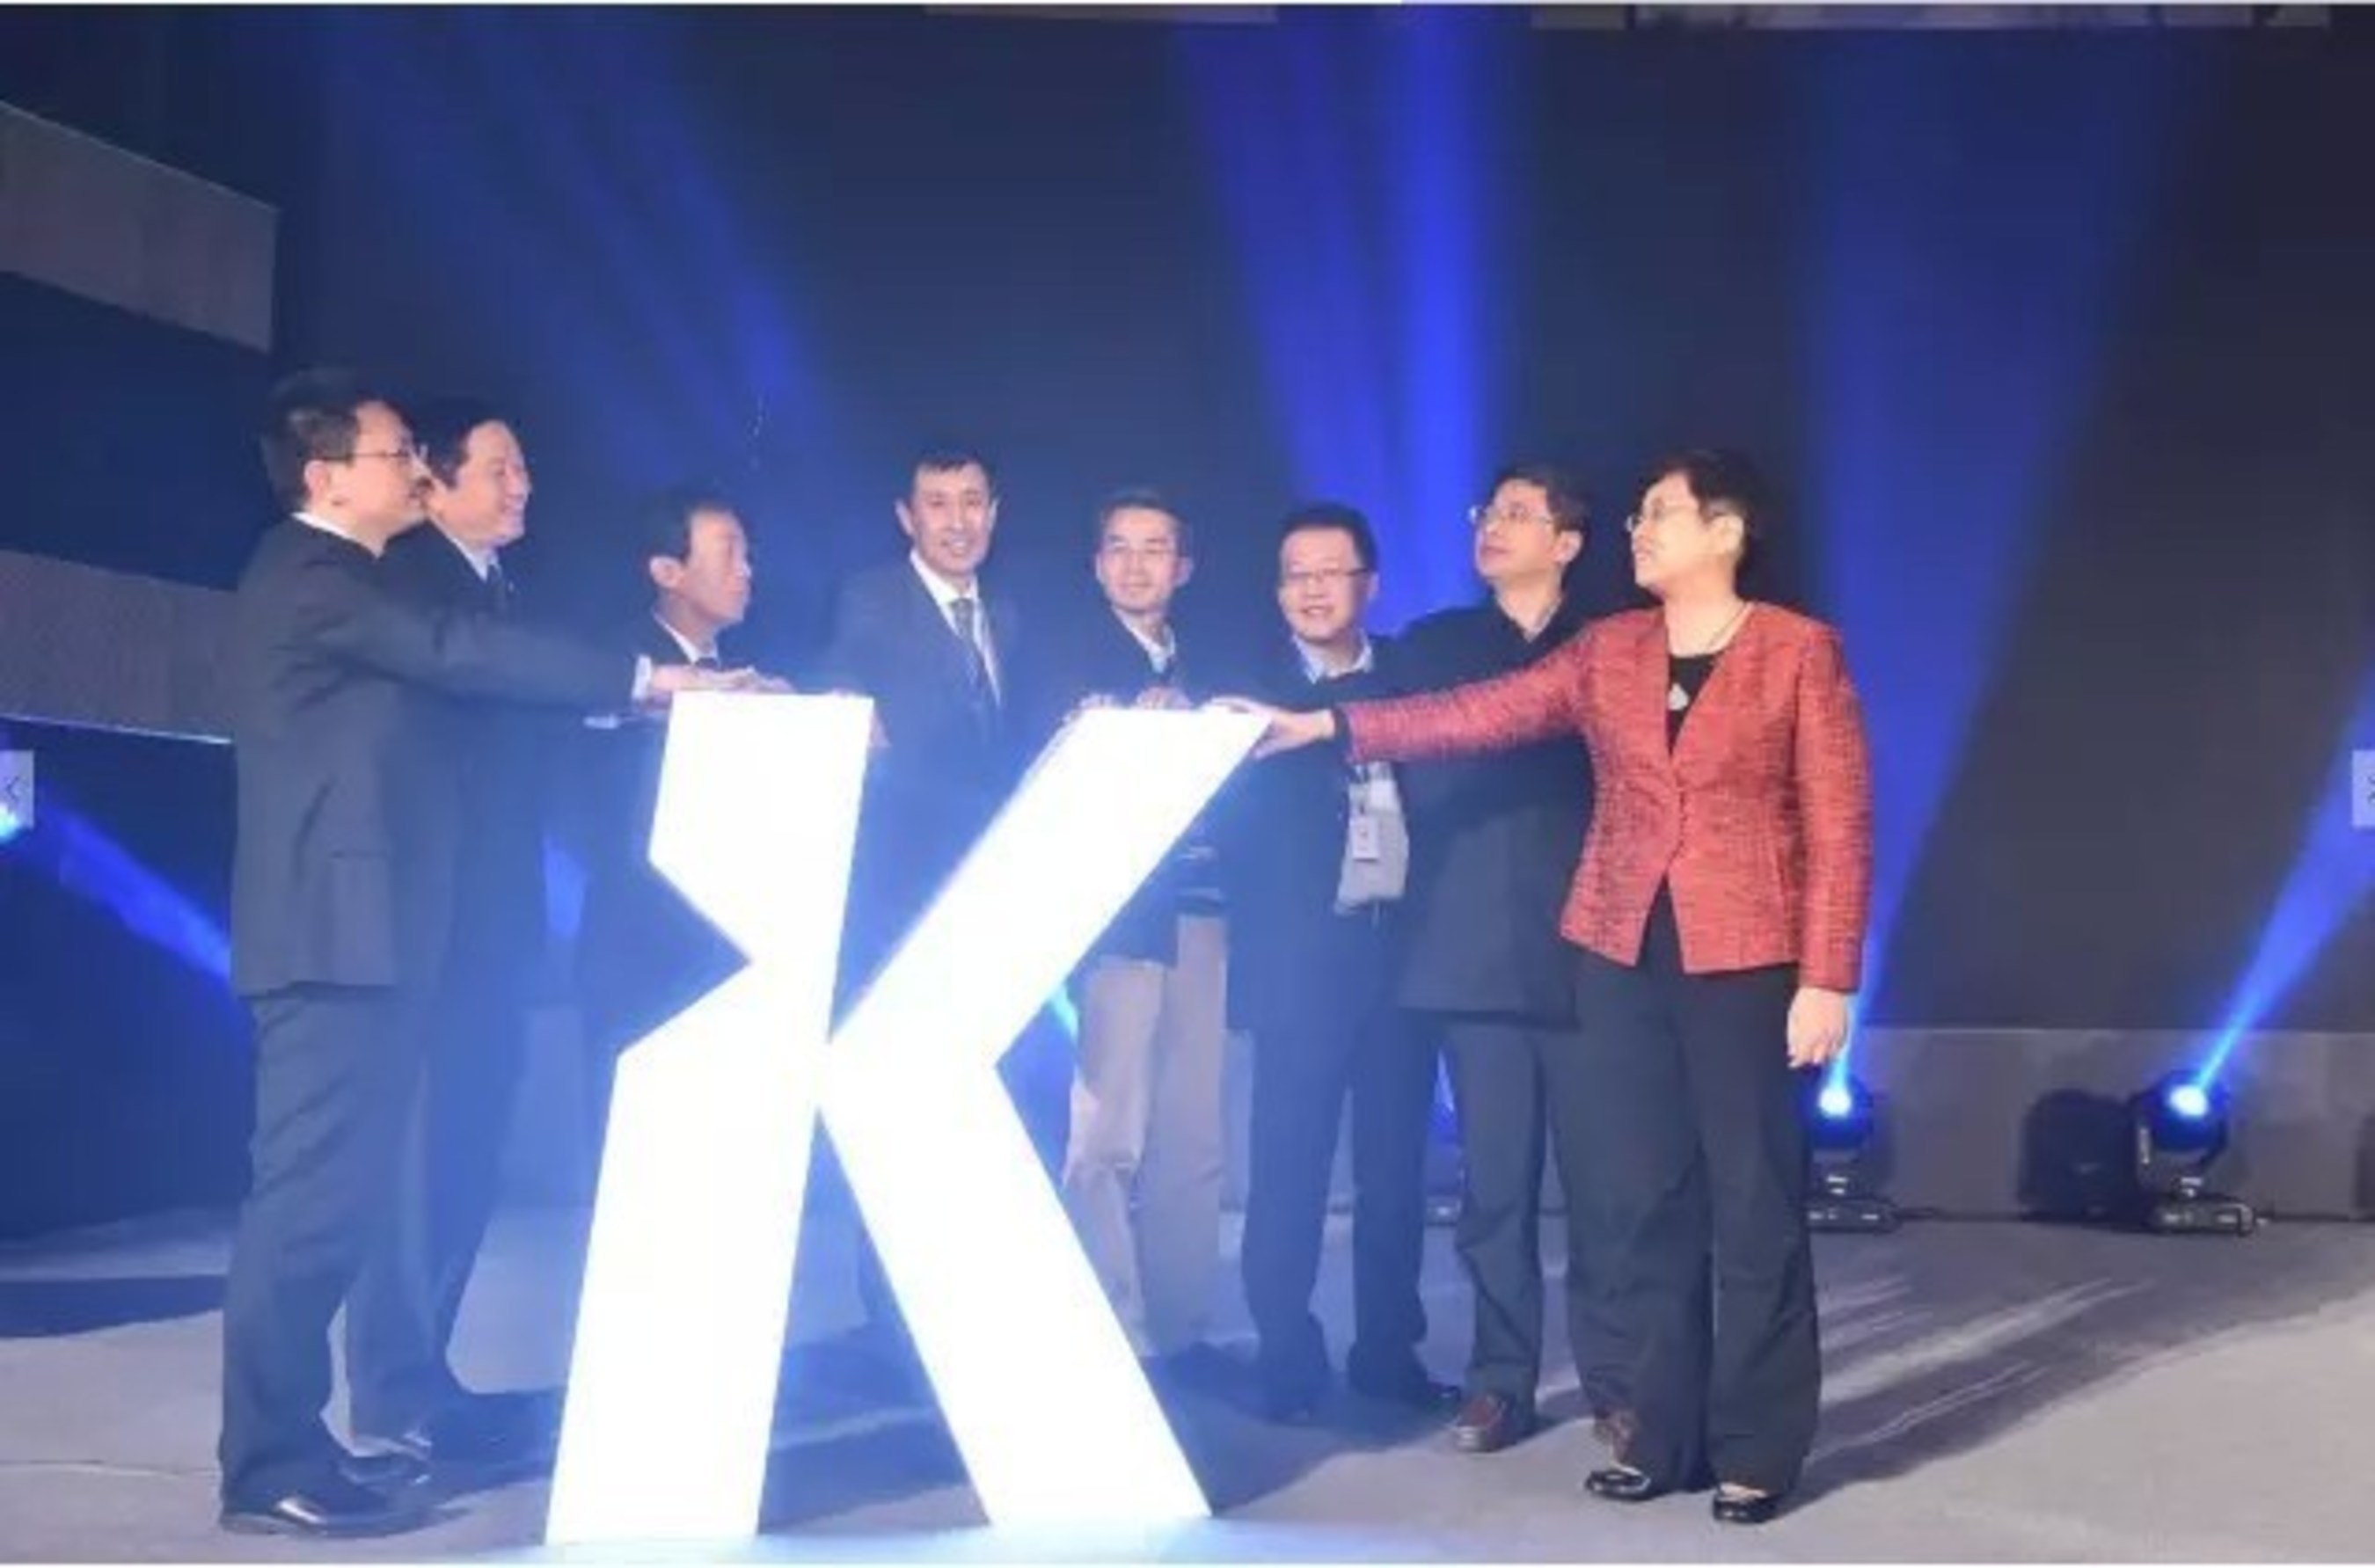 Users, Partners and Inspur Jointly Launch K-DB